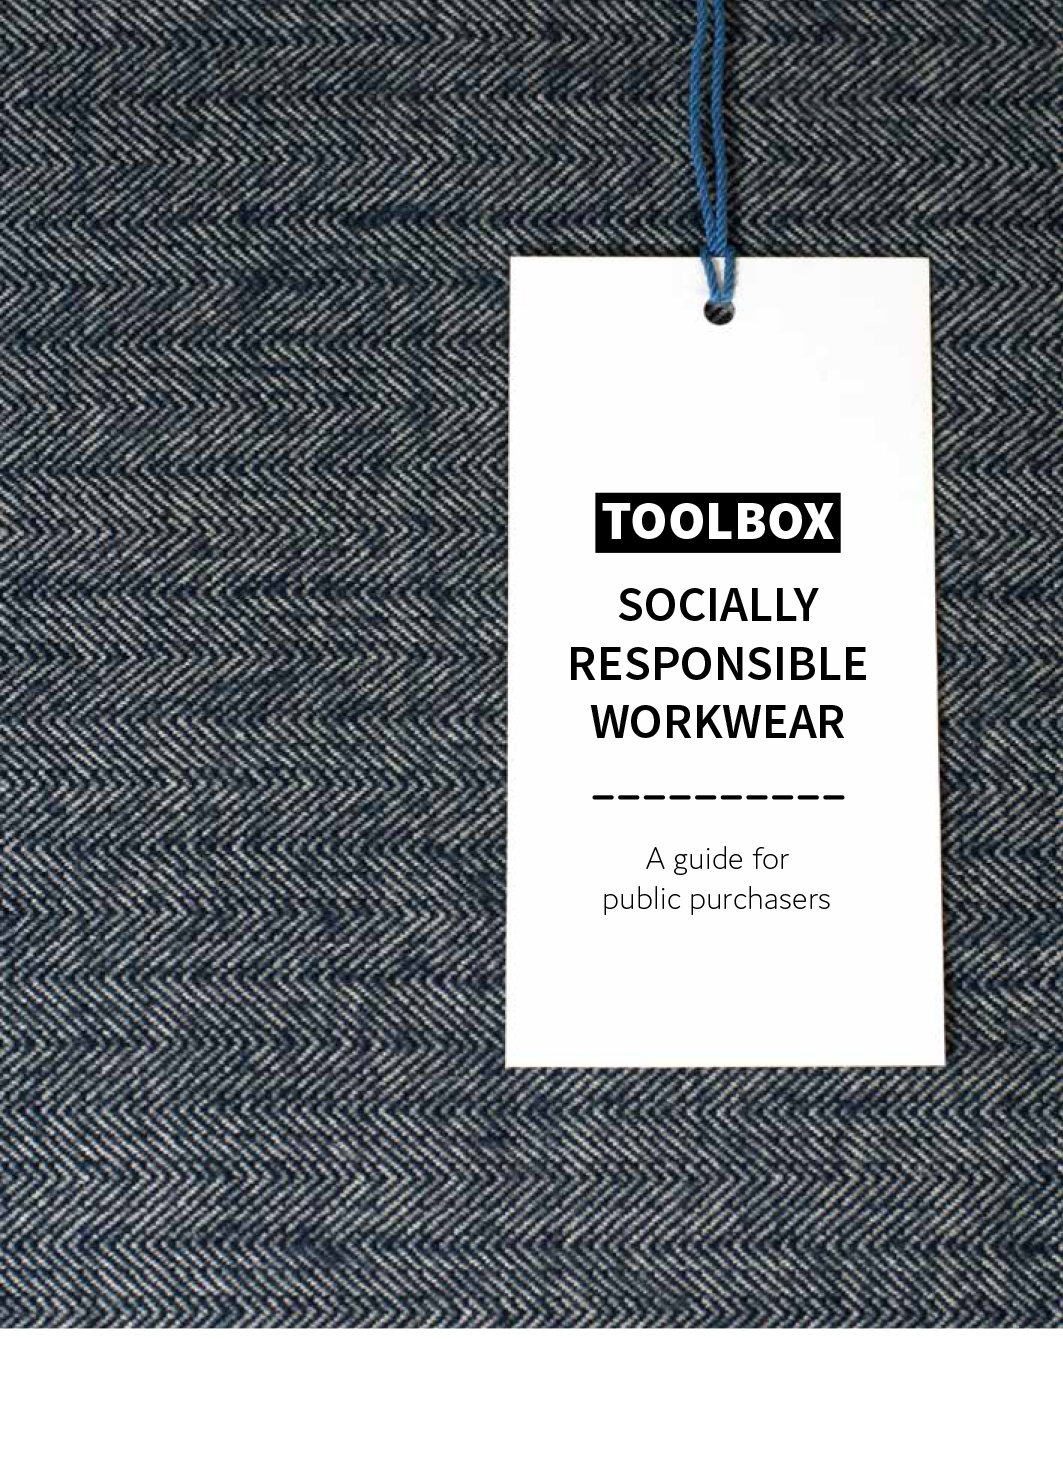 Toolbox – Socially responsible workwear